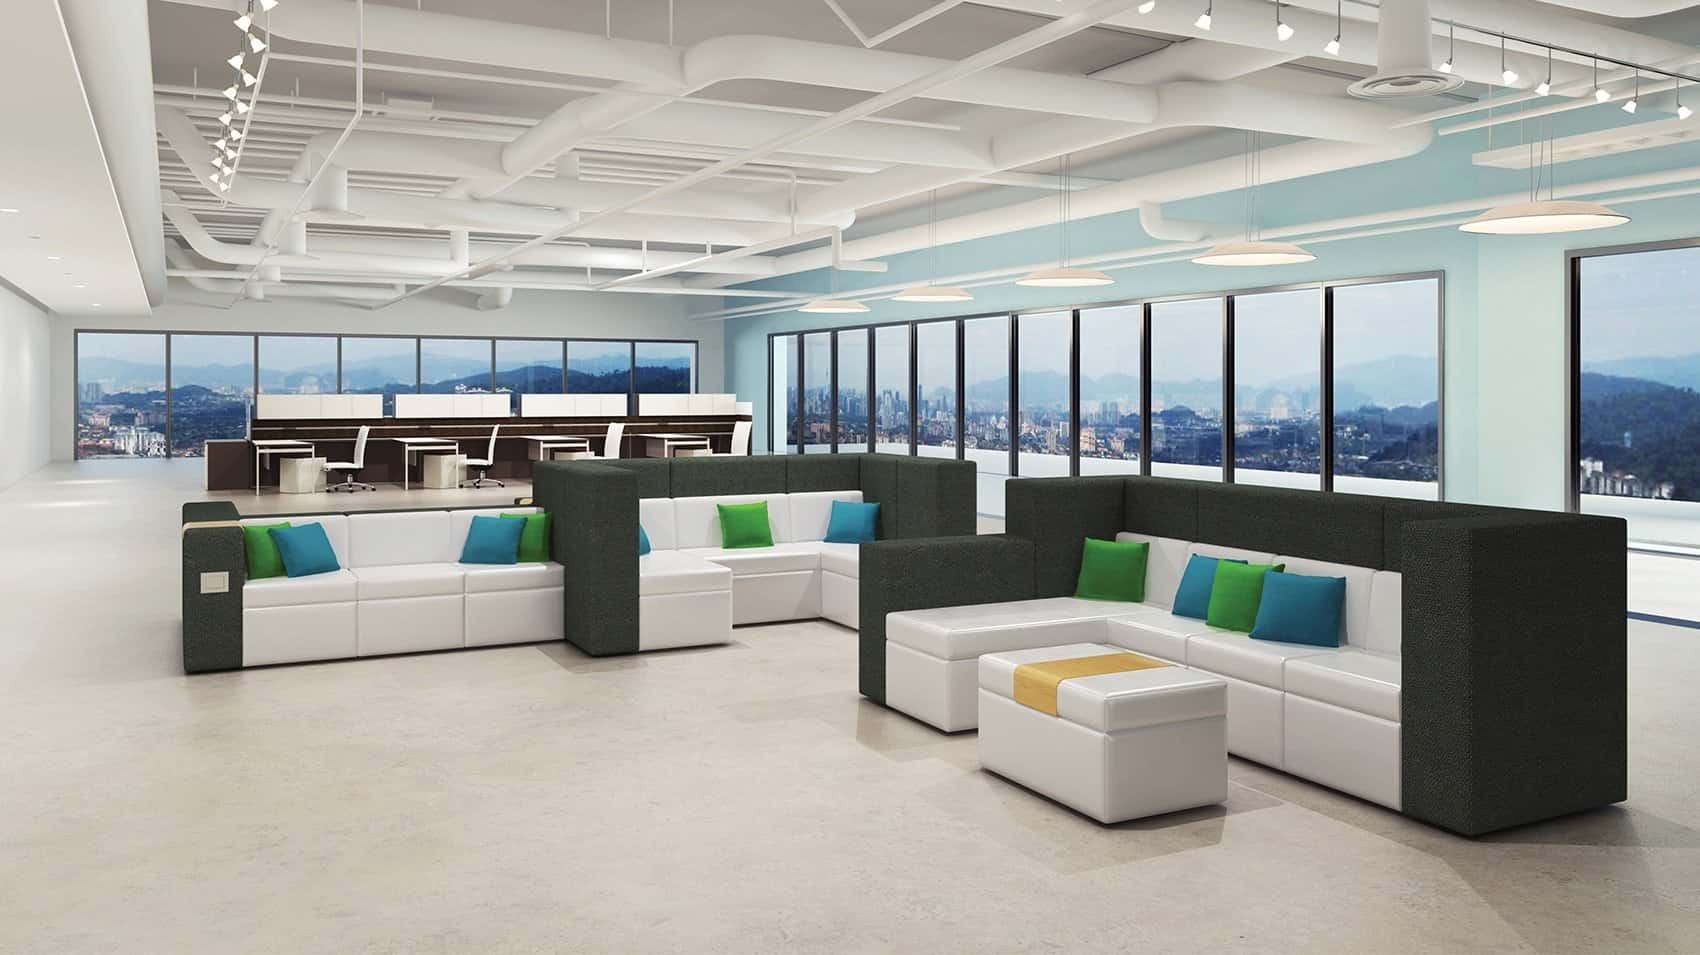 Inside Collaborative Classroom ~ Step inside the modern classroom systems furniture